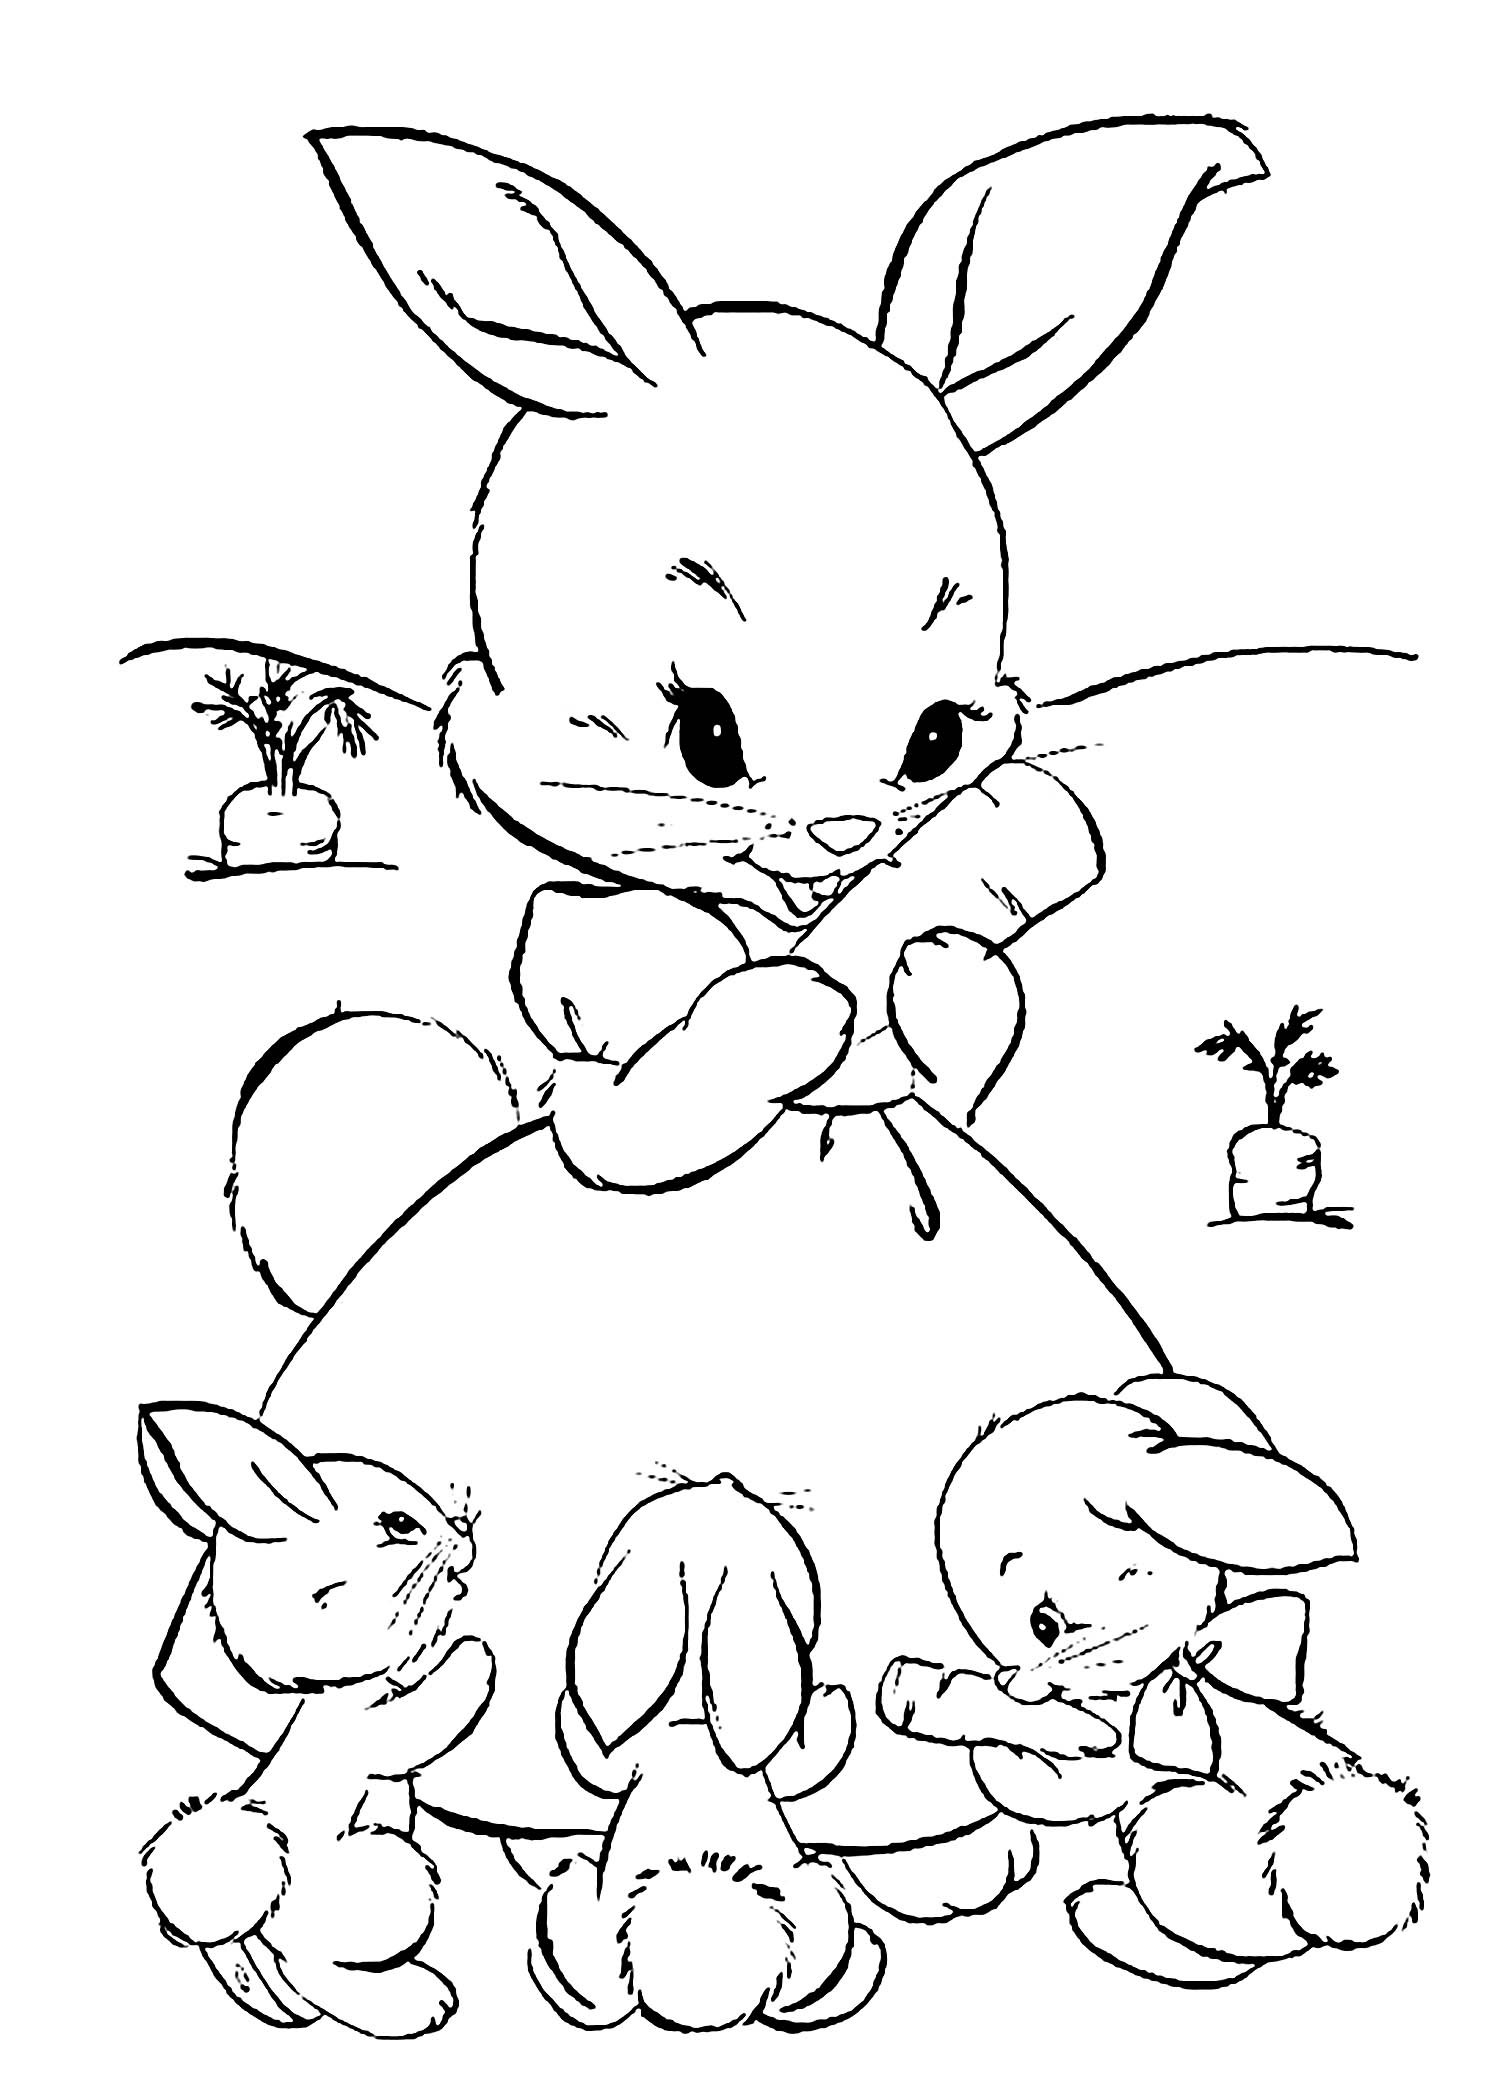 rabbit coloring for kids rabbit free to color for children rabbit kids coloring pages coloring for rabbit kids